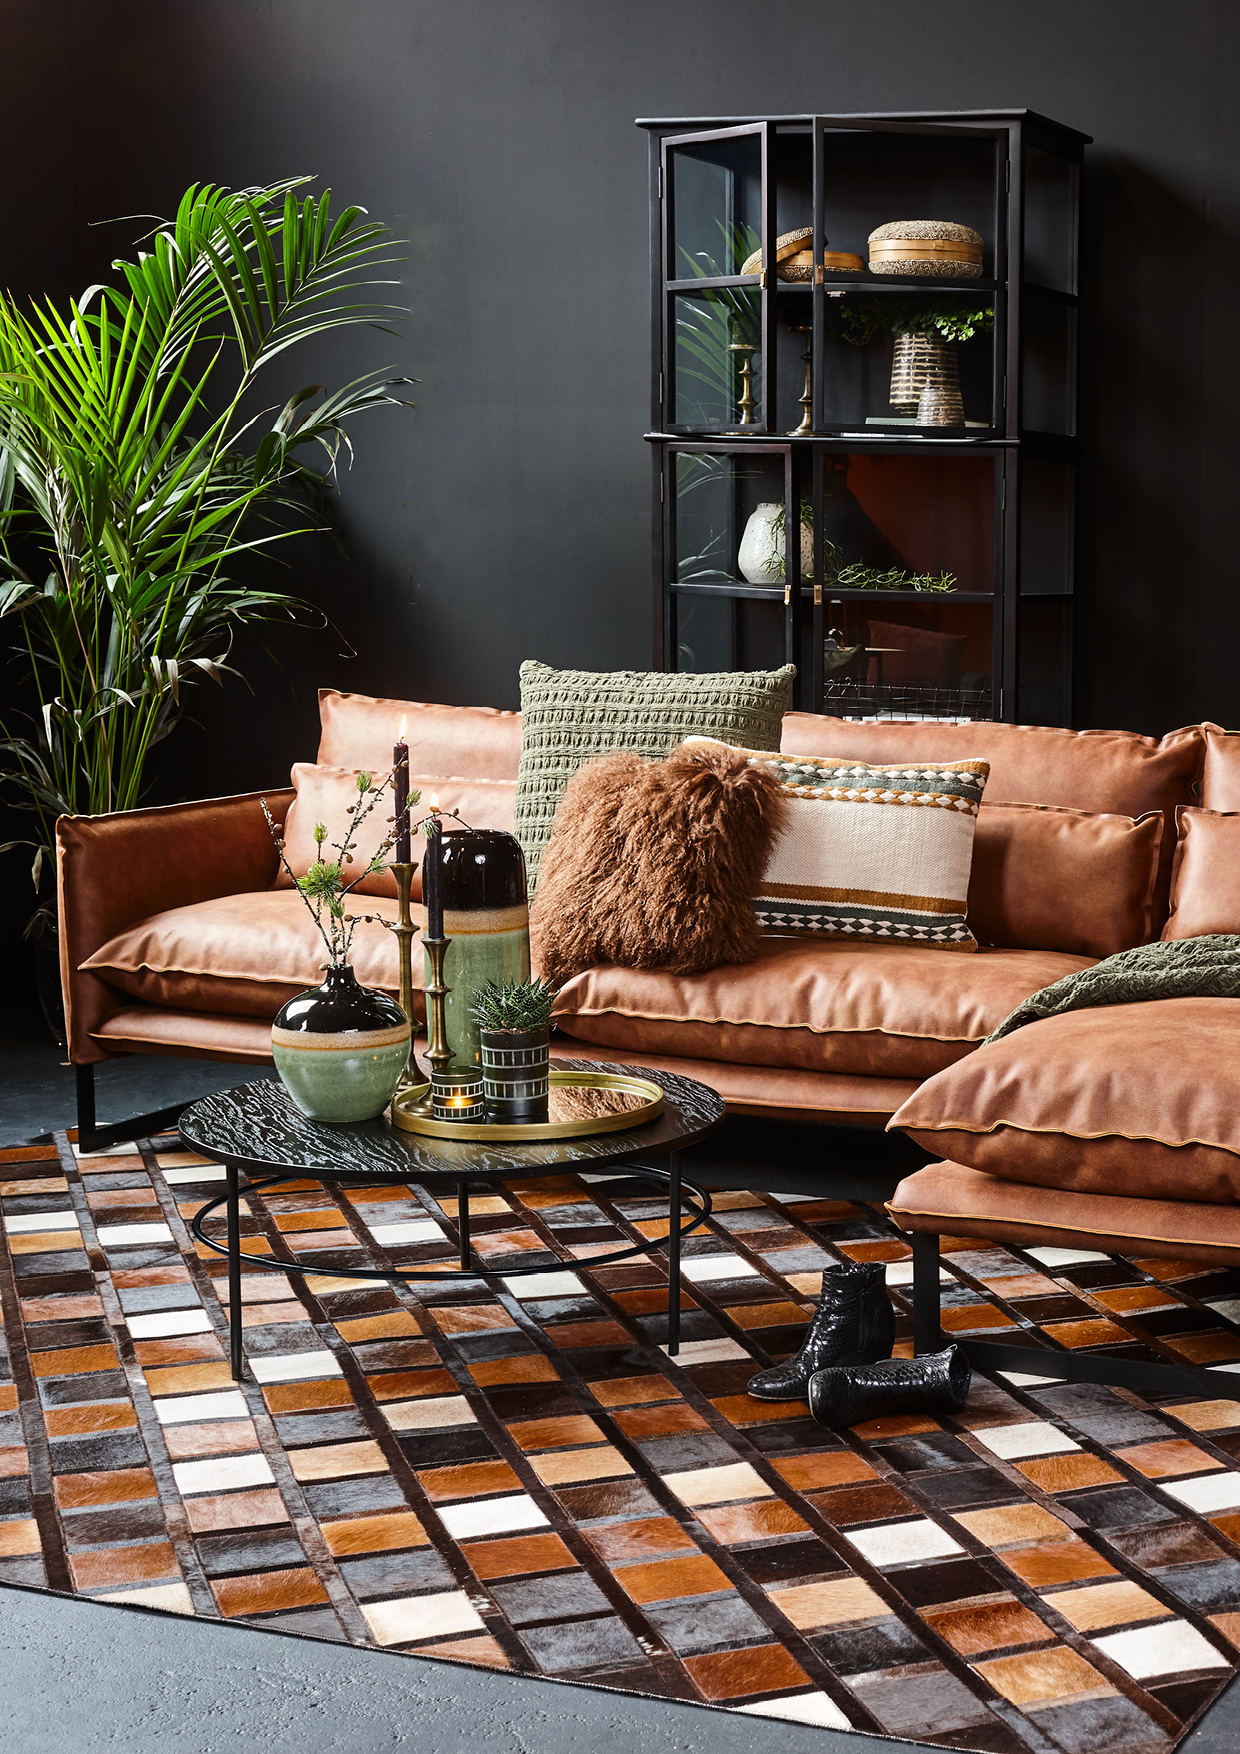 over lifestyle home collection » LifeStyle - Home Collection